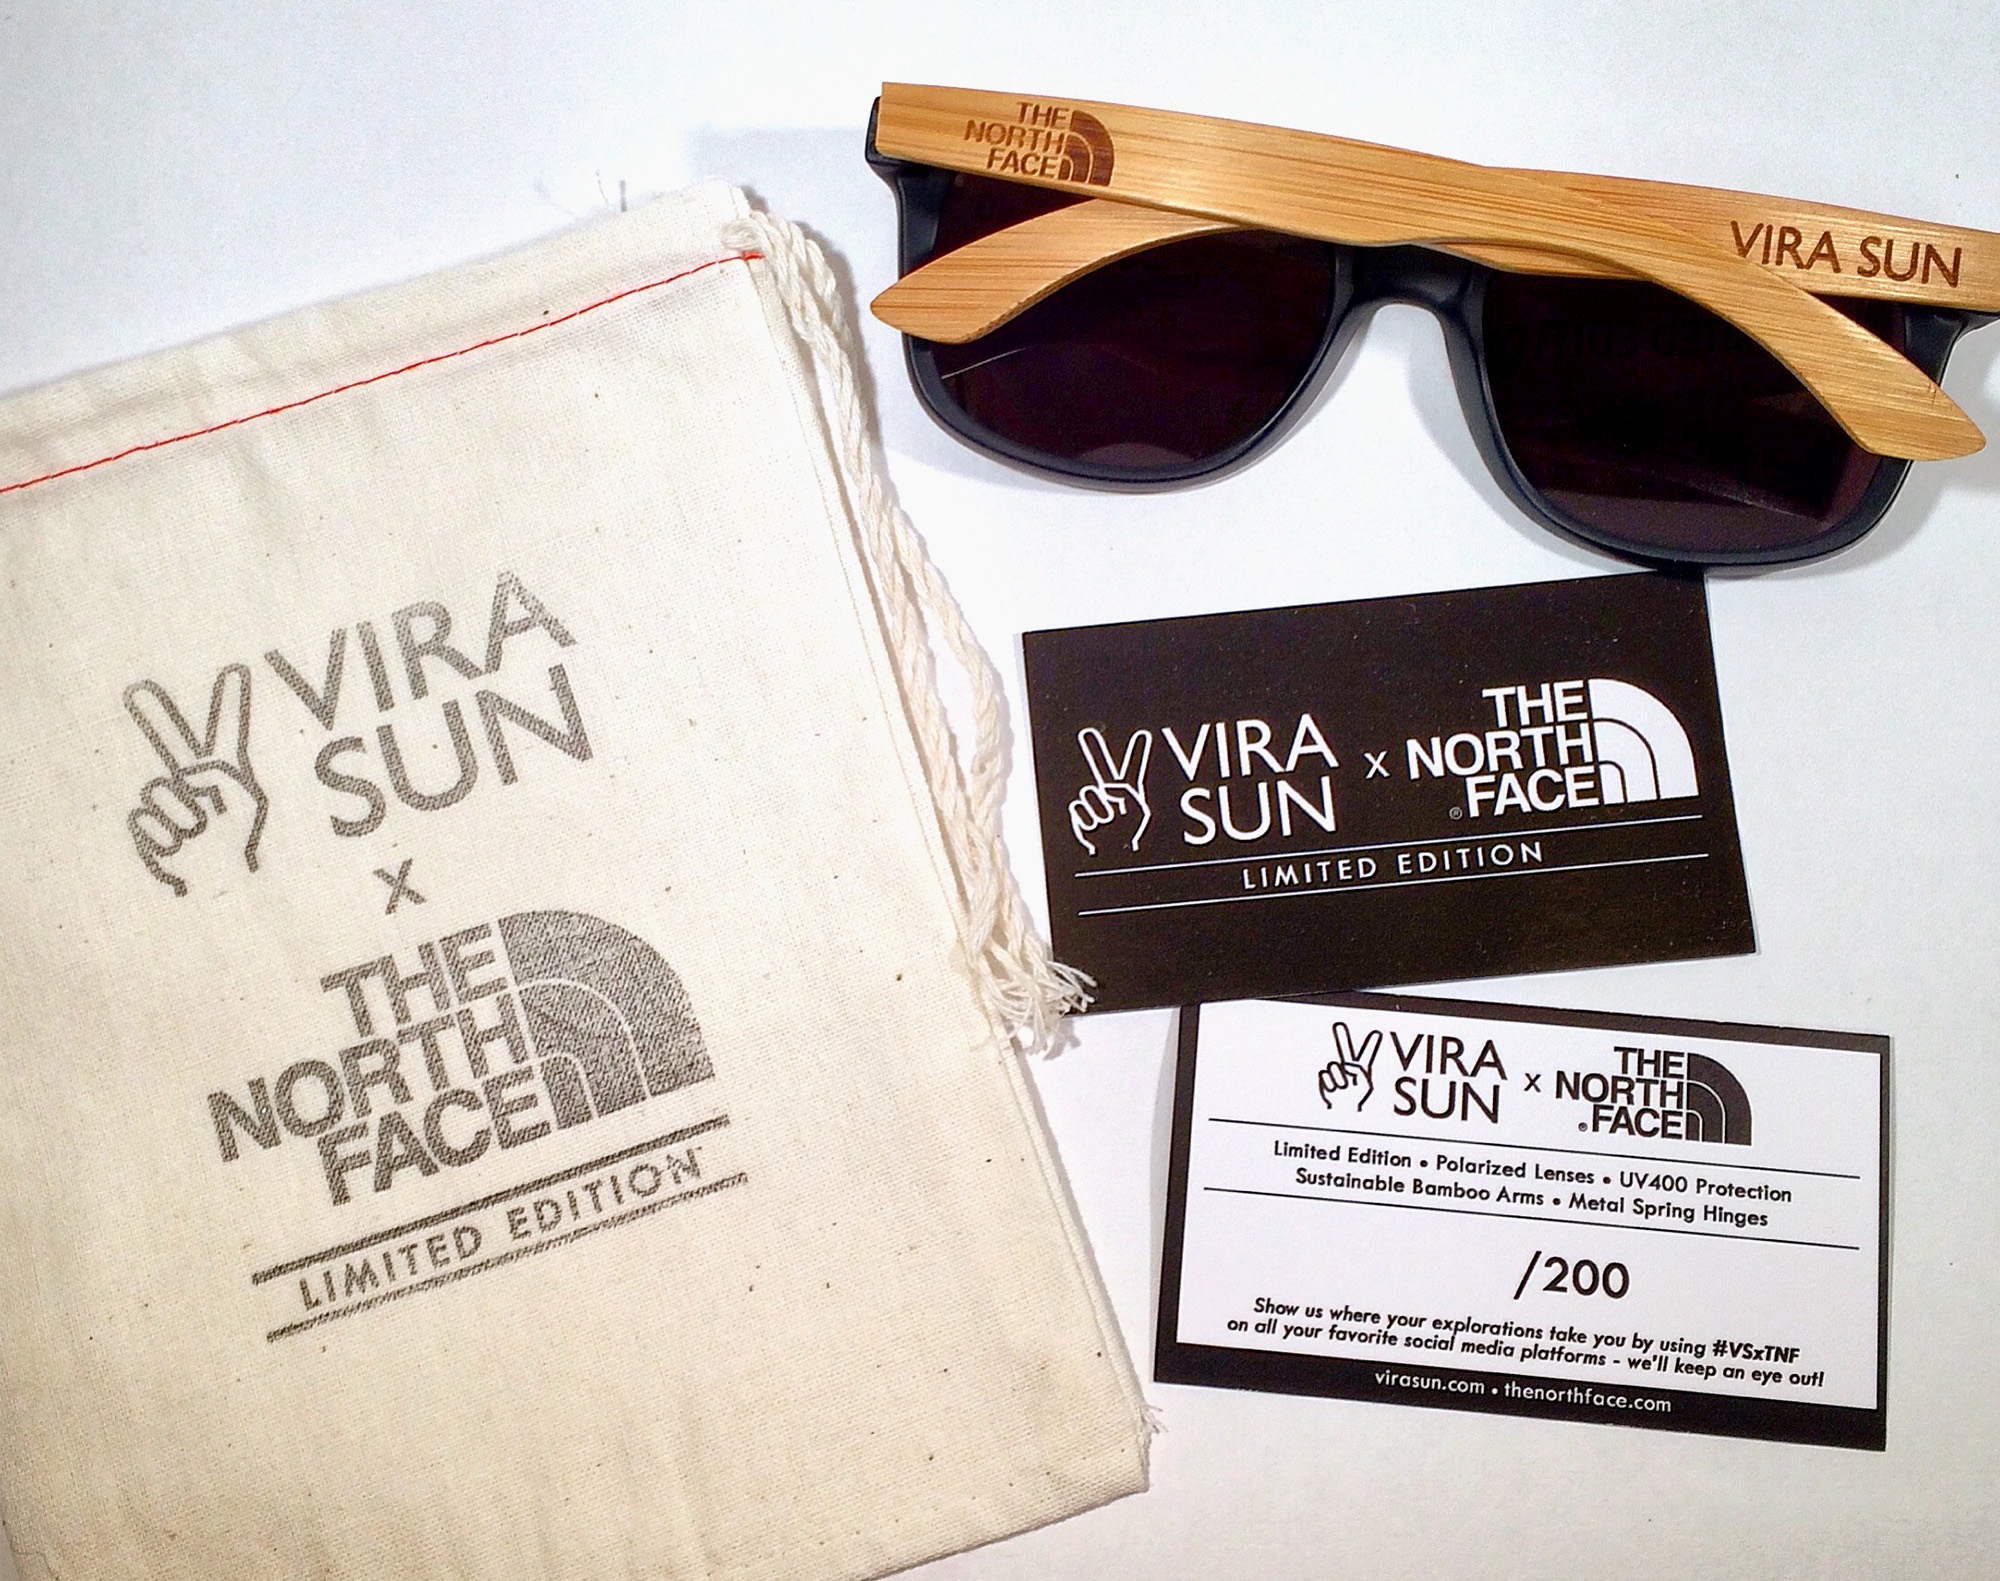 Vira Sun x The North Face